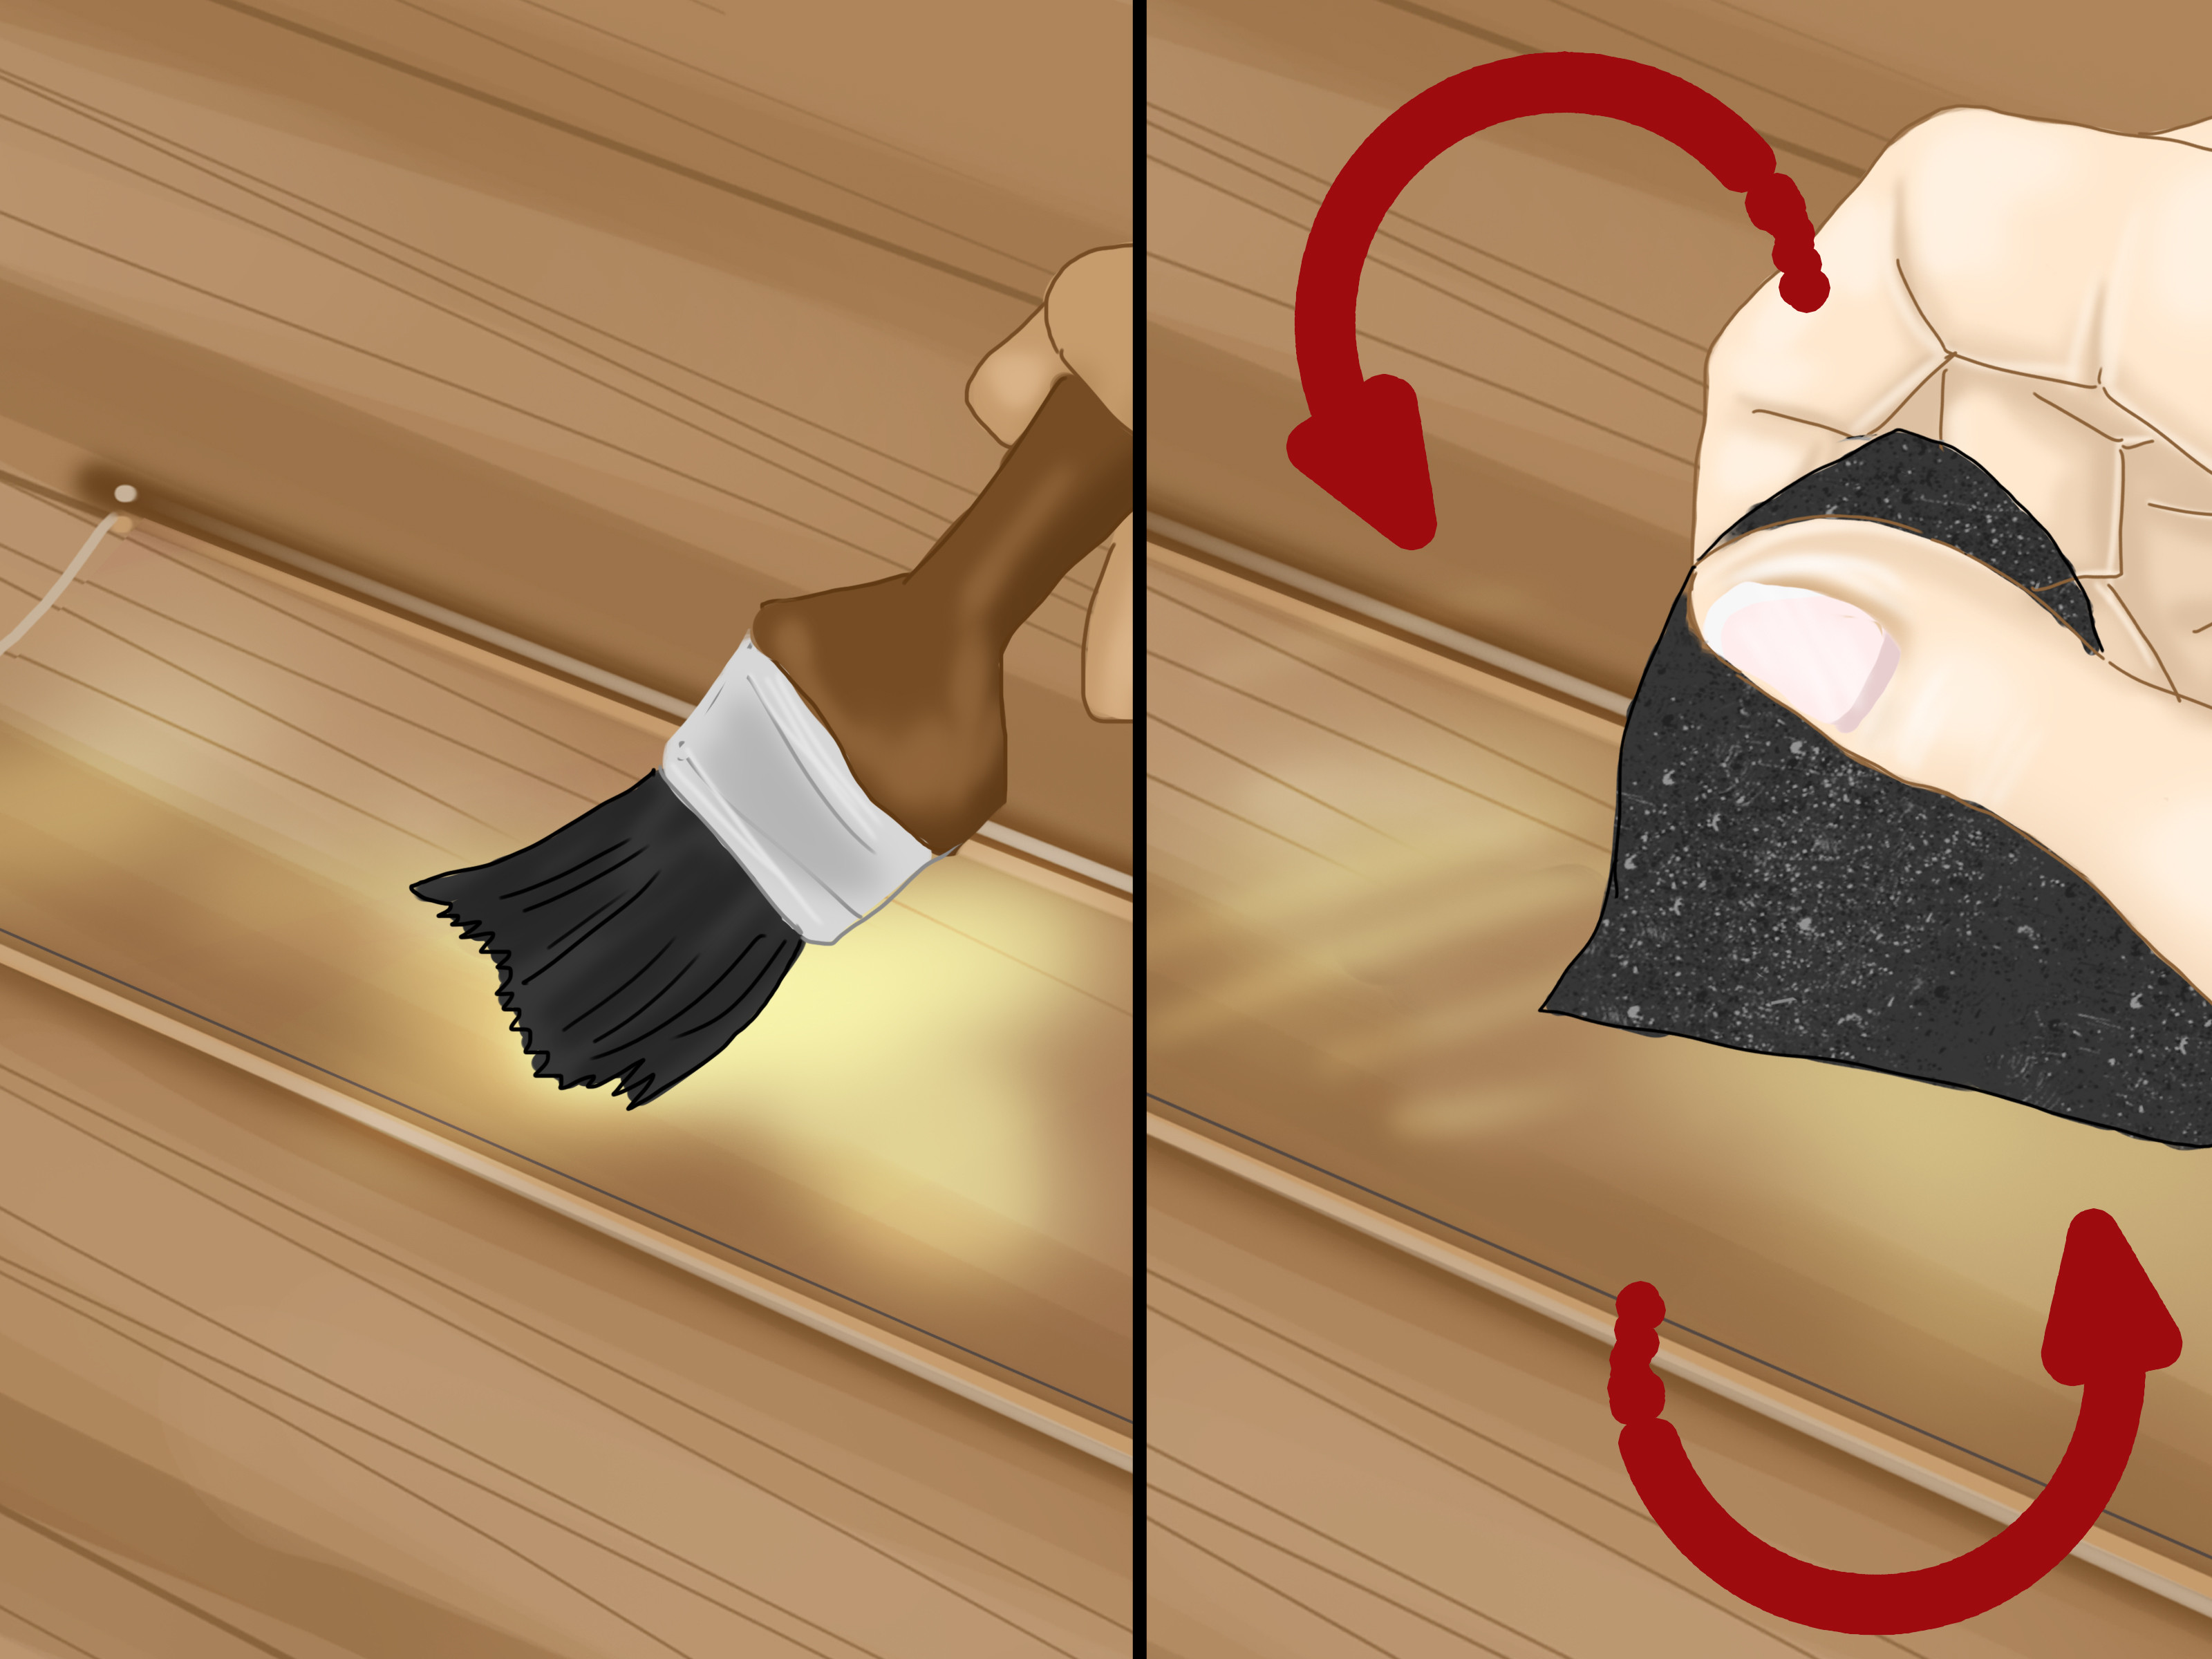 the hardwood flooring store of 5 easy ways to get permanent marker stain out of hardwood flooring for get permanent marker stain out of hardwood flooring step 36